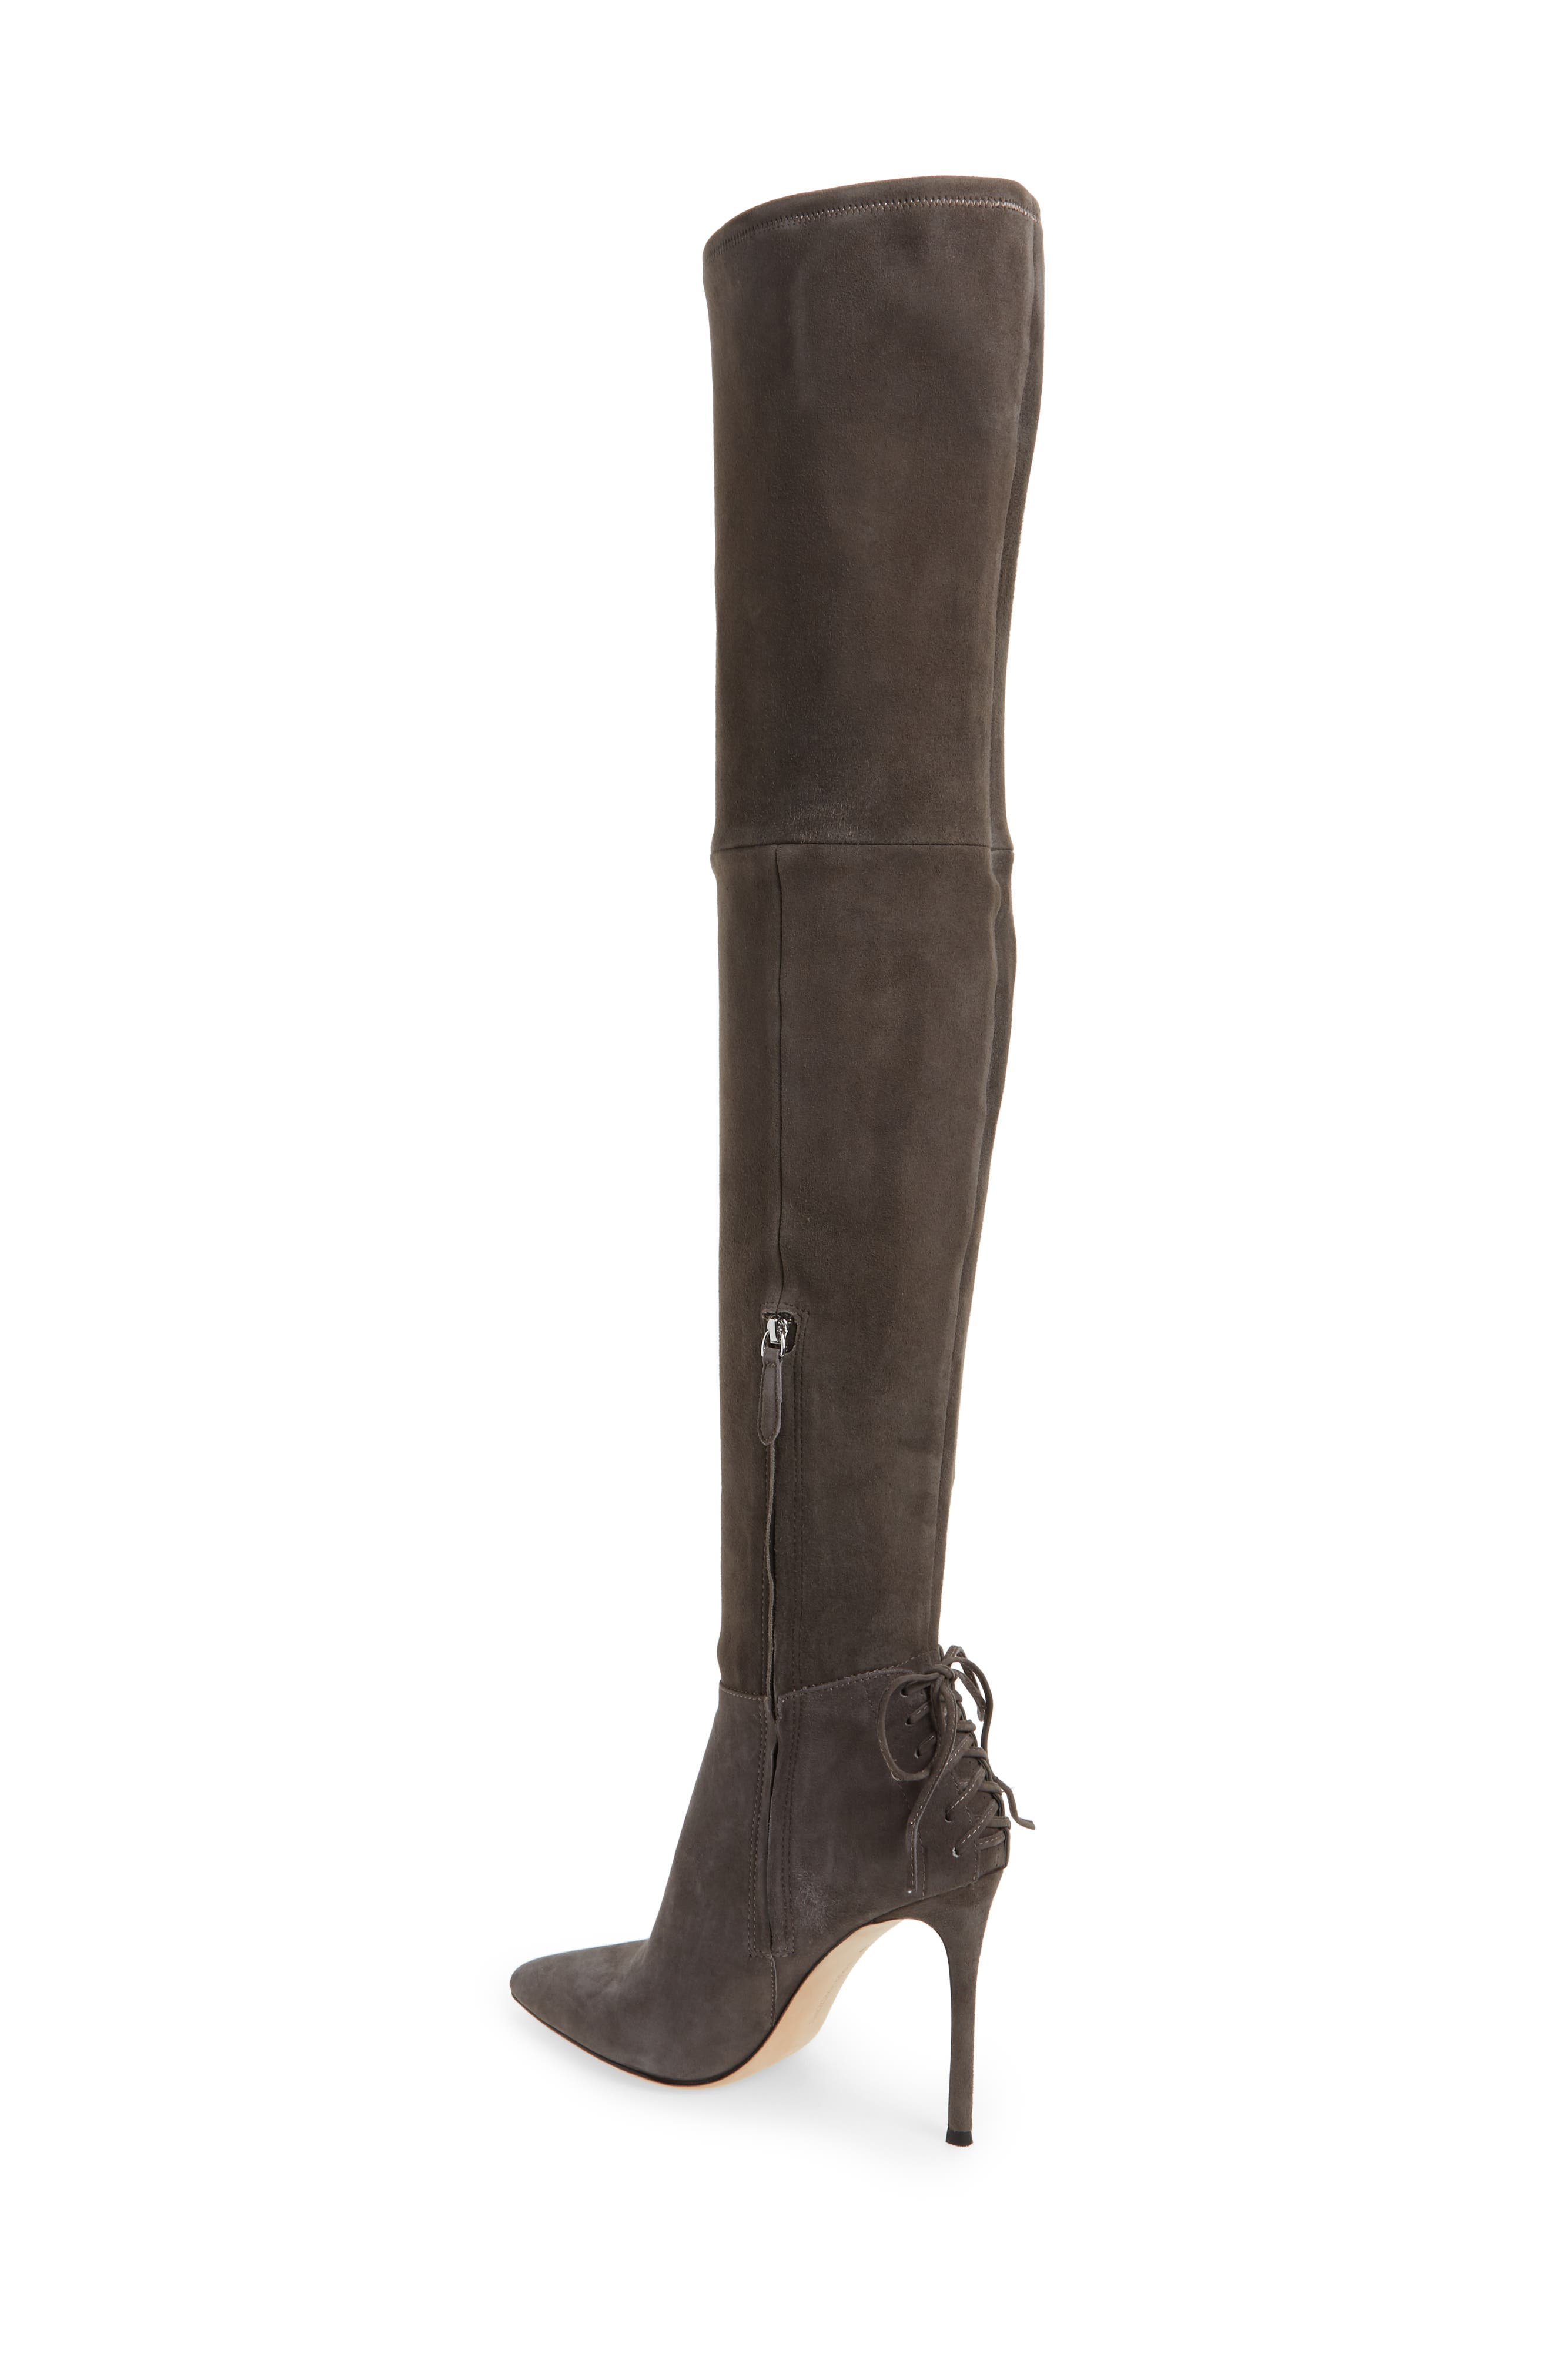 'Caterina' Over the Knee Boot,                             Alternate thumbnail 2, color,                             037